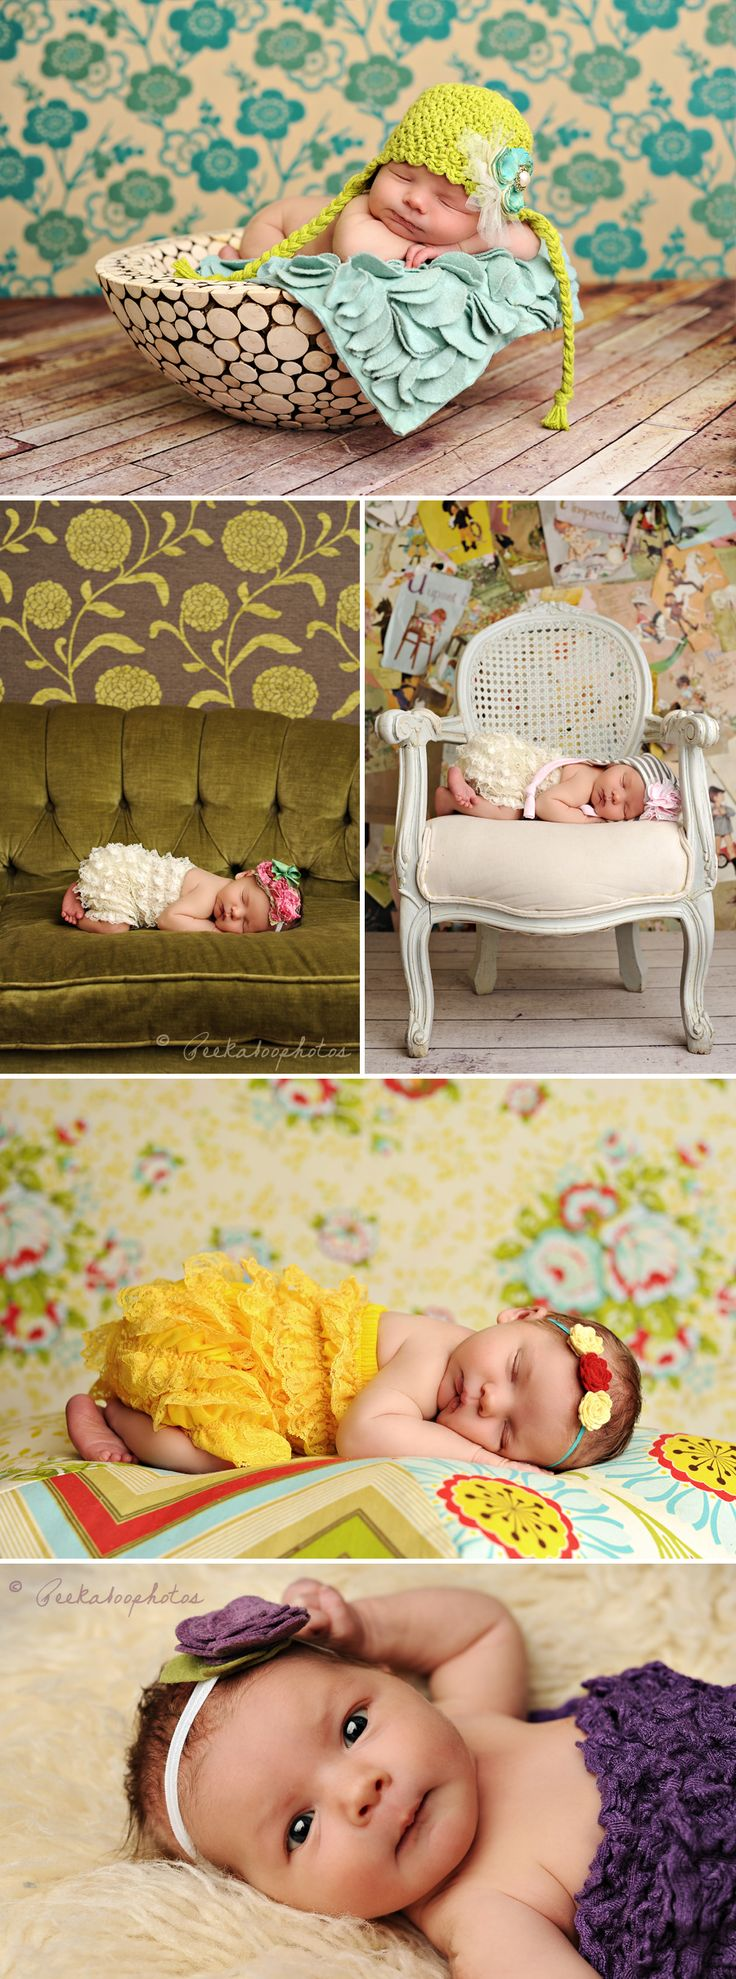 The most darling baby poses - great blog